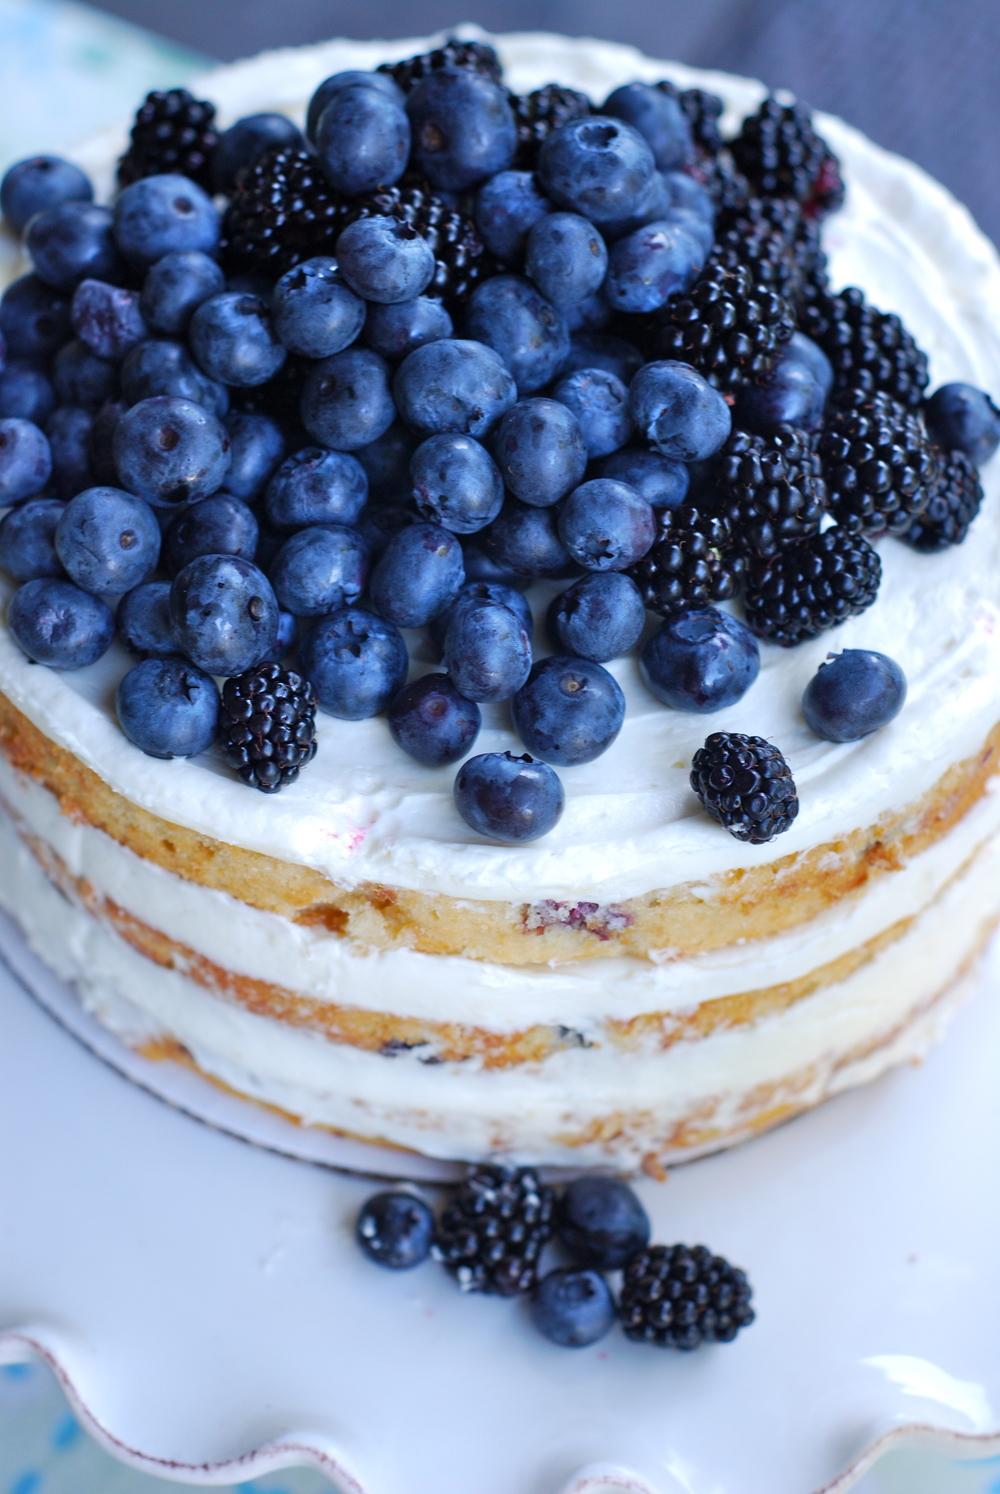 Lemon naked cake with blueberries and blackberries